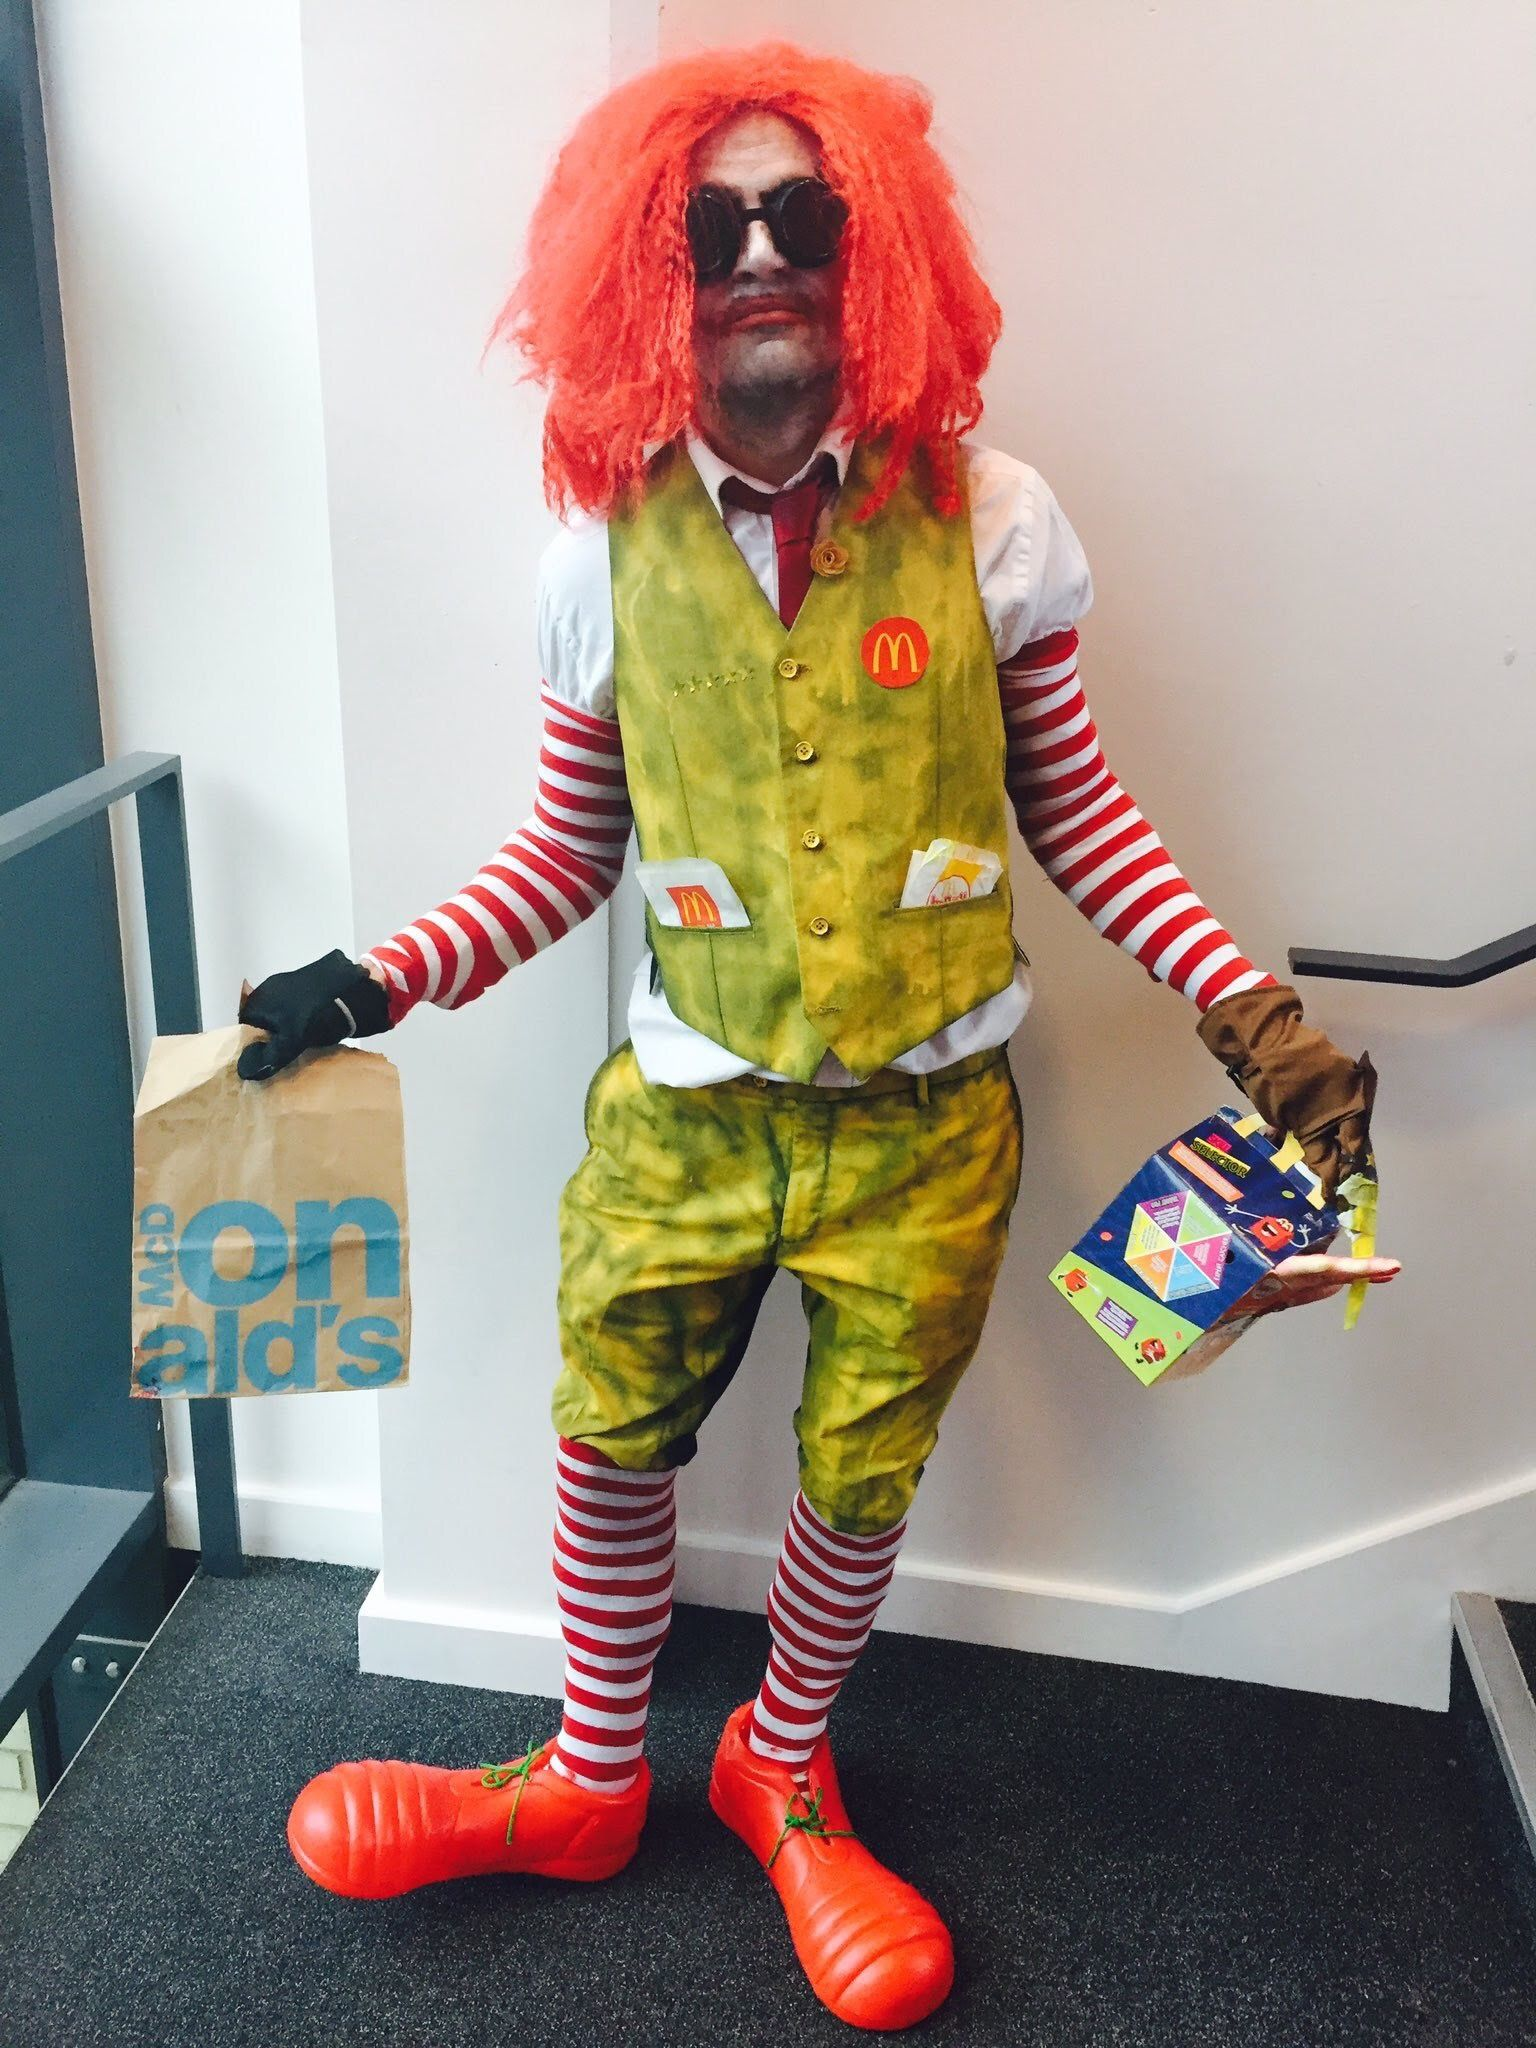 Scary clown mask by Dennie and Stacie Lowe on Micky D's